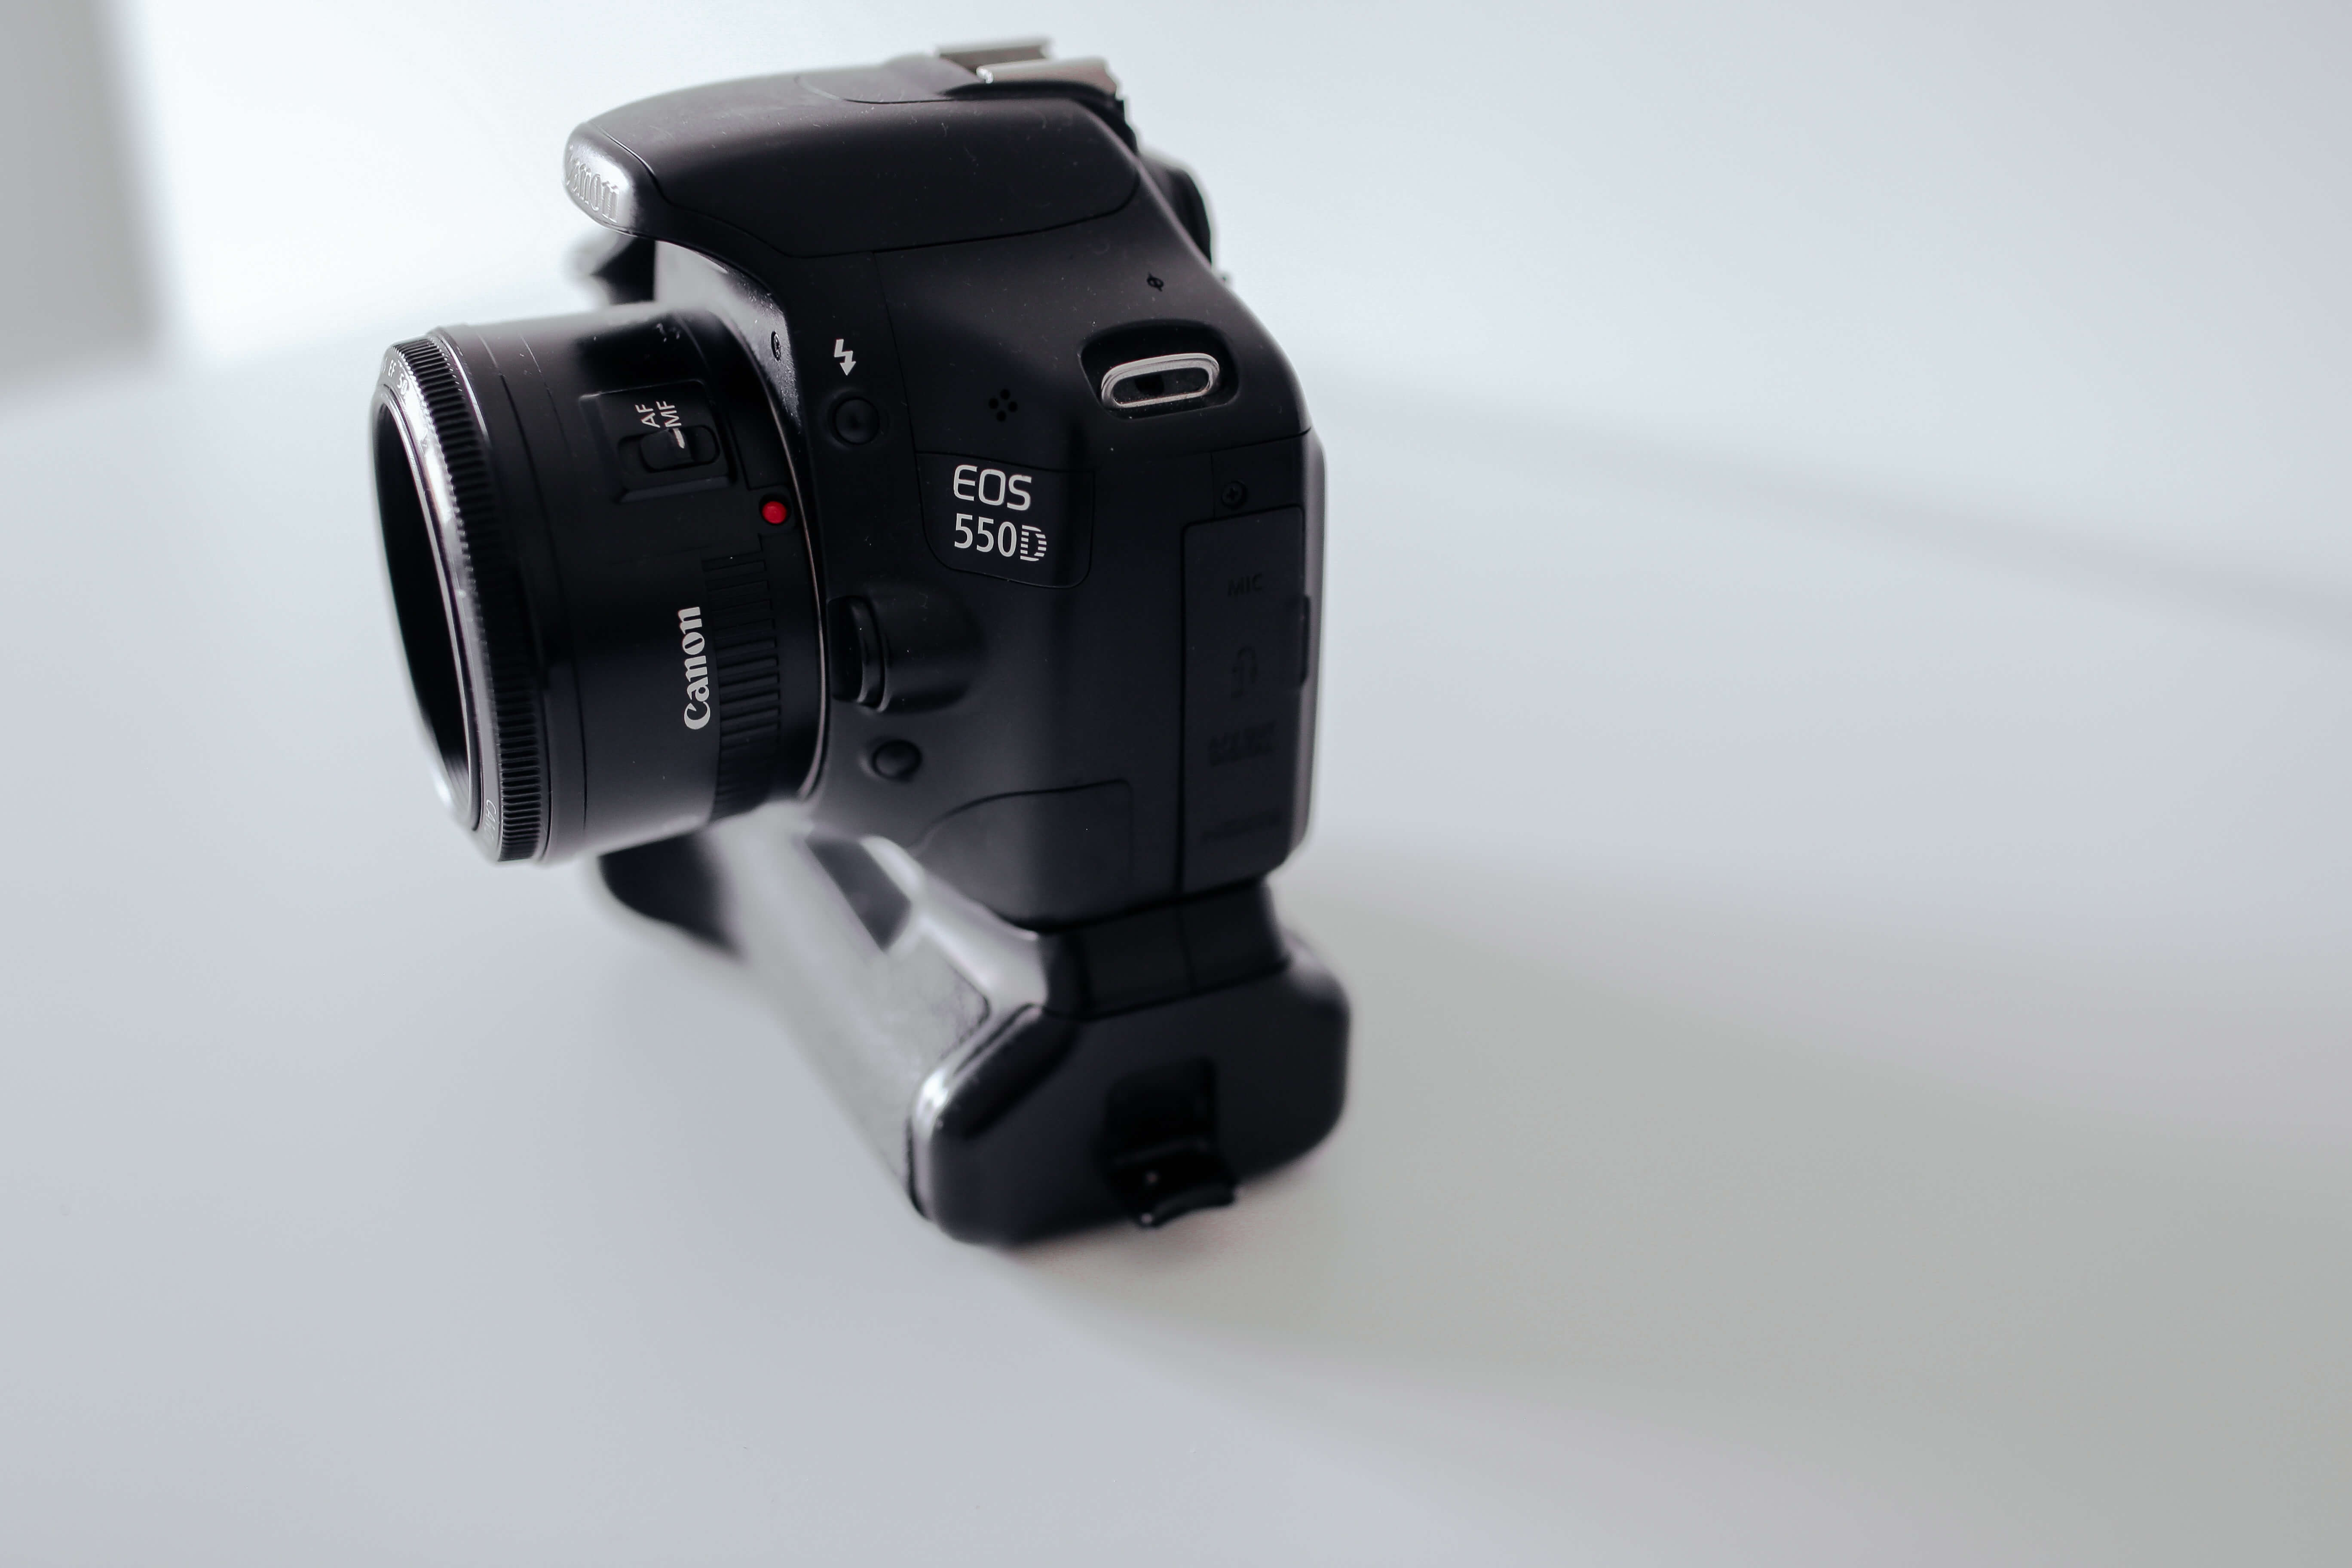 Canon DSLR camera with battery grip attached